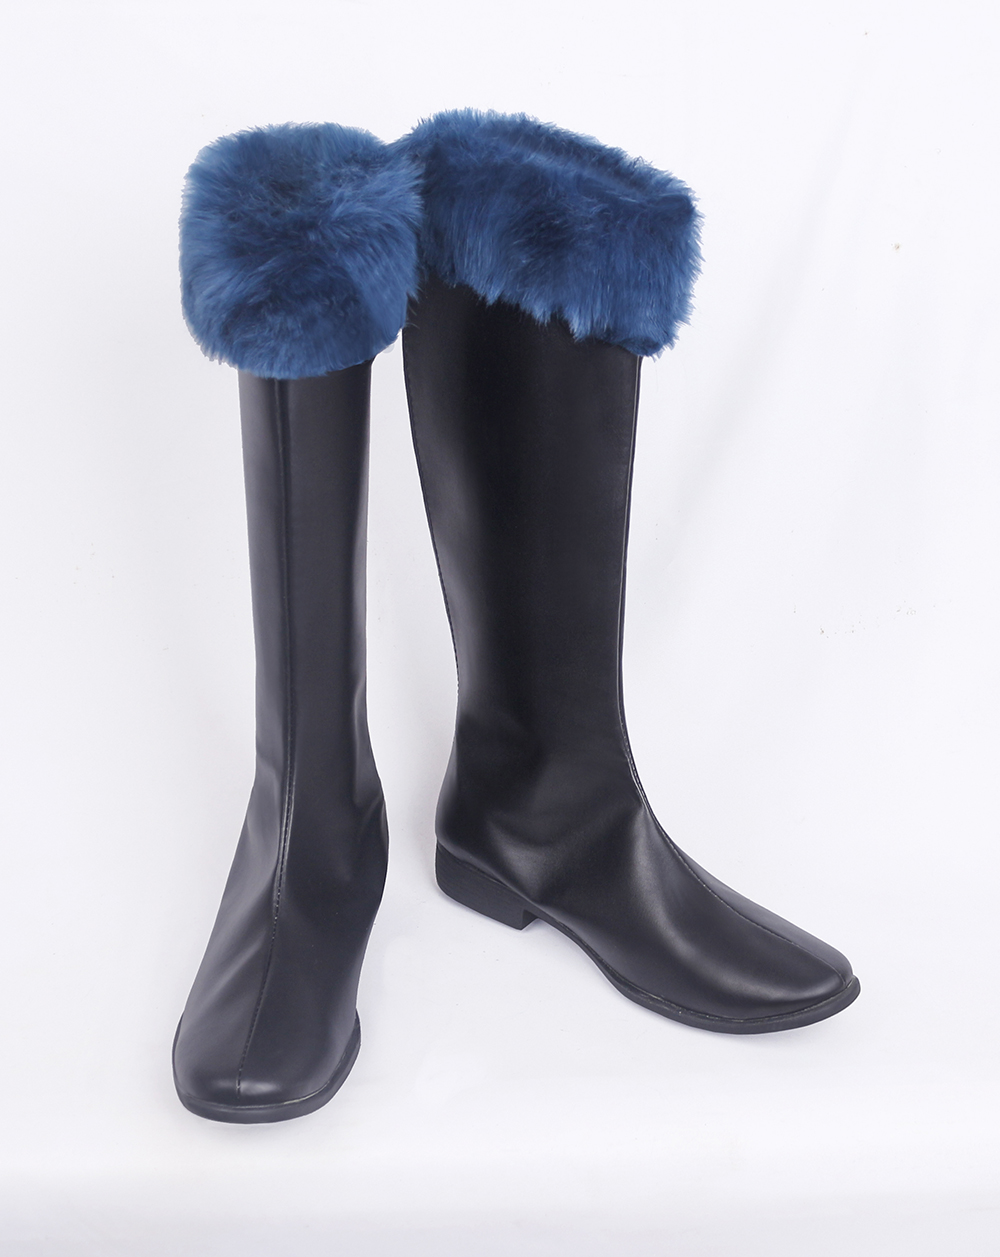 Black Clover Klaus Lunettes Cosplay Boots (2)